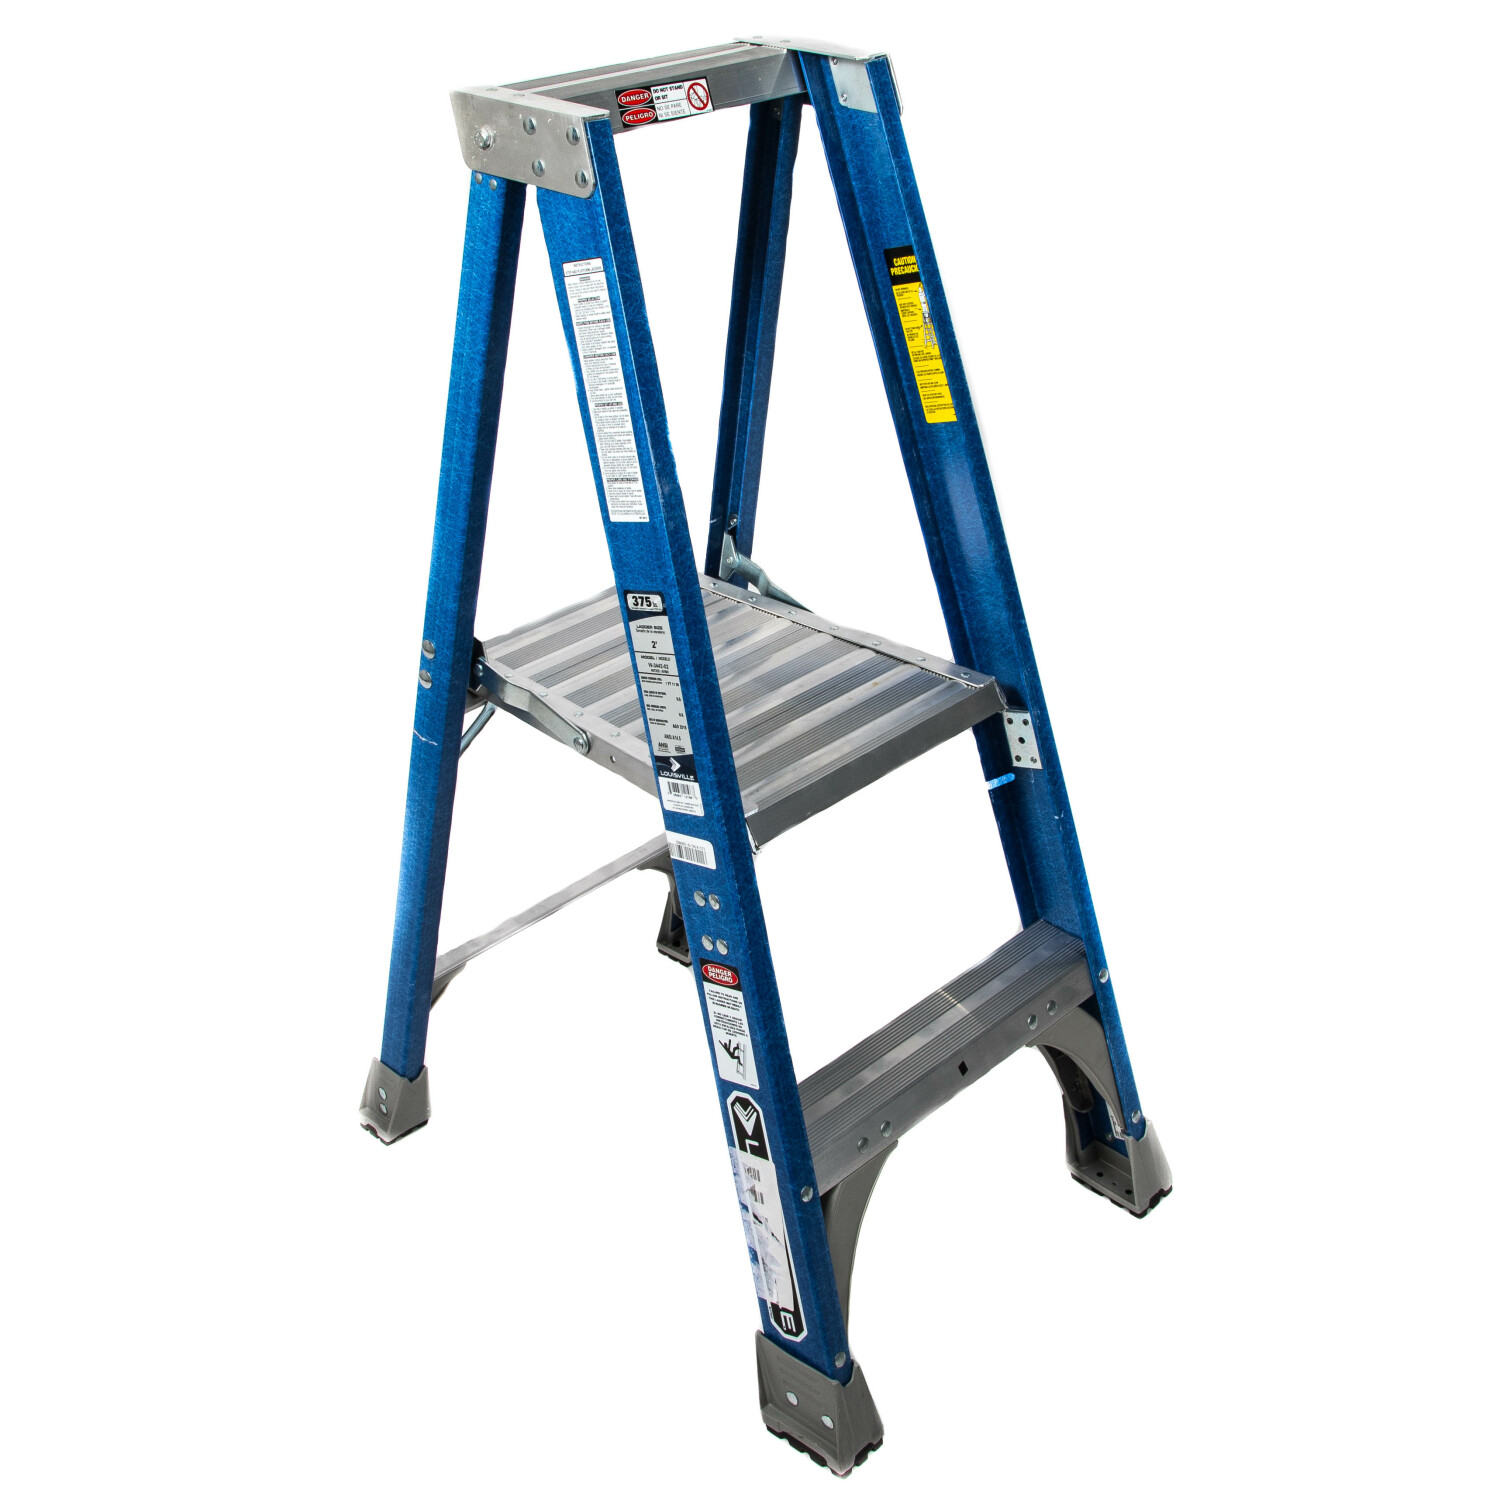 Louisville 2 Step Platform Ladder with 375 lb. Load Capacity Meets ANSI and OSHA Standards - Blue